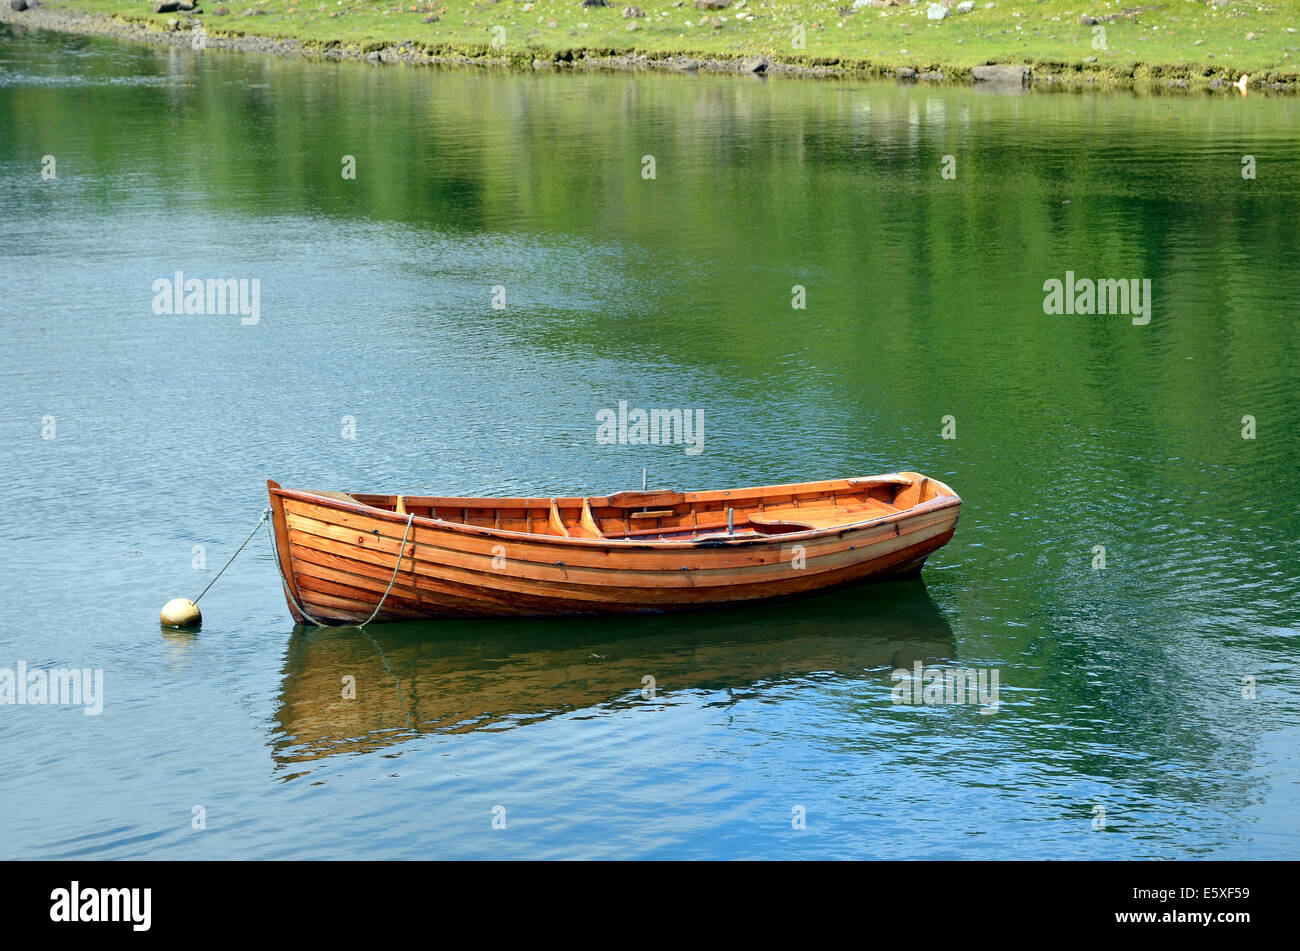 A small clinker built wooden rowing boat tied to a mooring buoy in the harbour at Westport Quay, Mayo, Ireland. - Stock Image